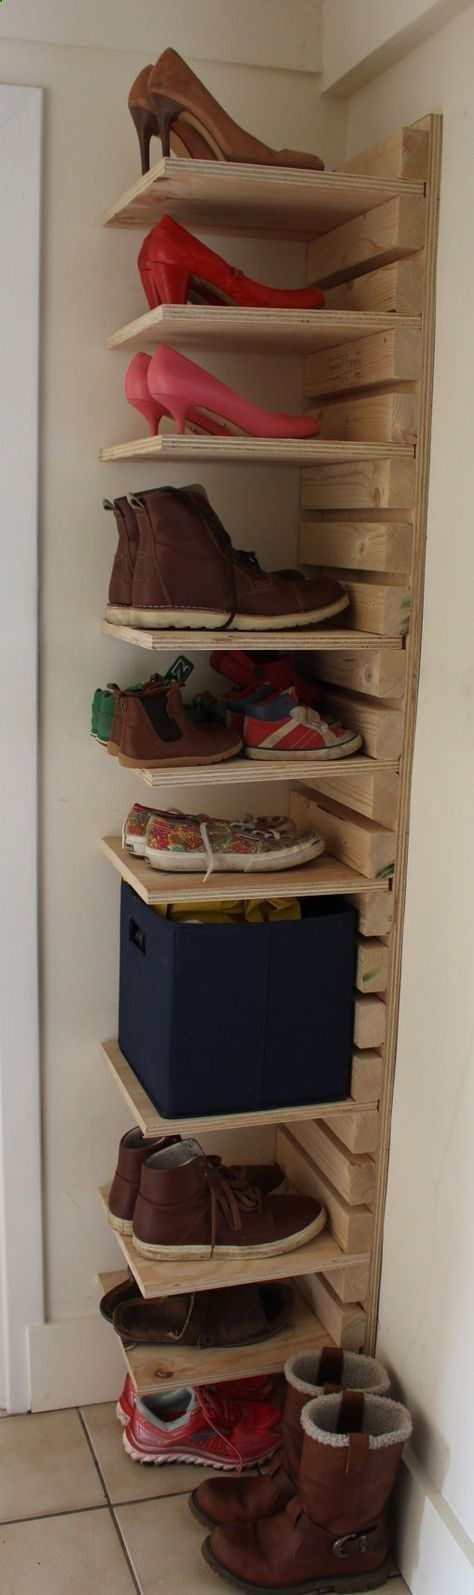 Plans of Woodworking Diy Projects - Woodworking Diy Projects By Ted - Inspiring Best Woodworking Ideas decoratop.co/... Distinct projects will call for different skill levels. You ought to know that outdoors woodworking projects are really common Get A Lifetime Of Project Ideas & Inspiration! #woodworkingprojects Get A Lifetime Of Project Ideas & Inspiration! #woodworkingideas